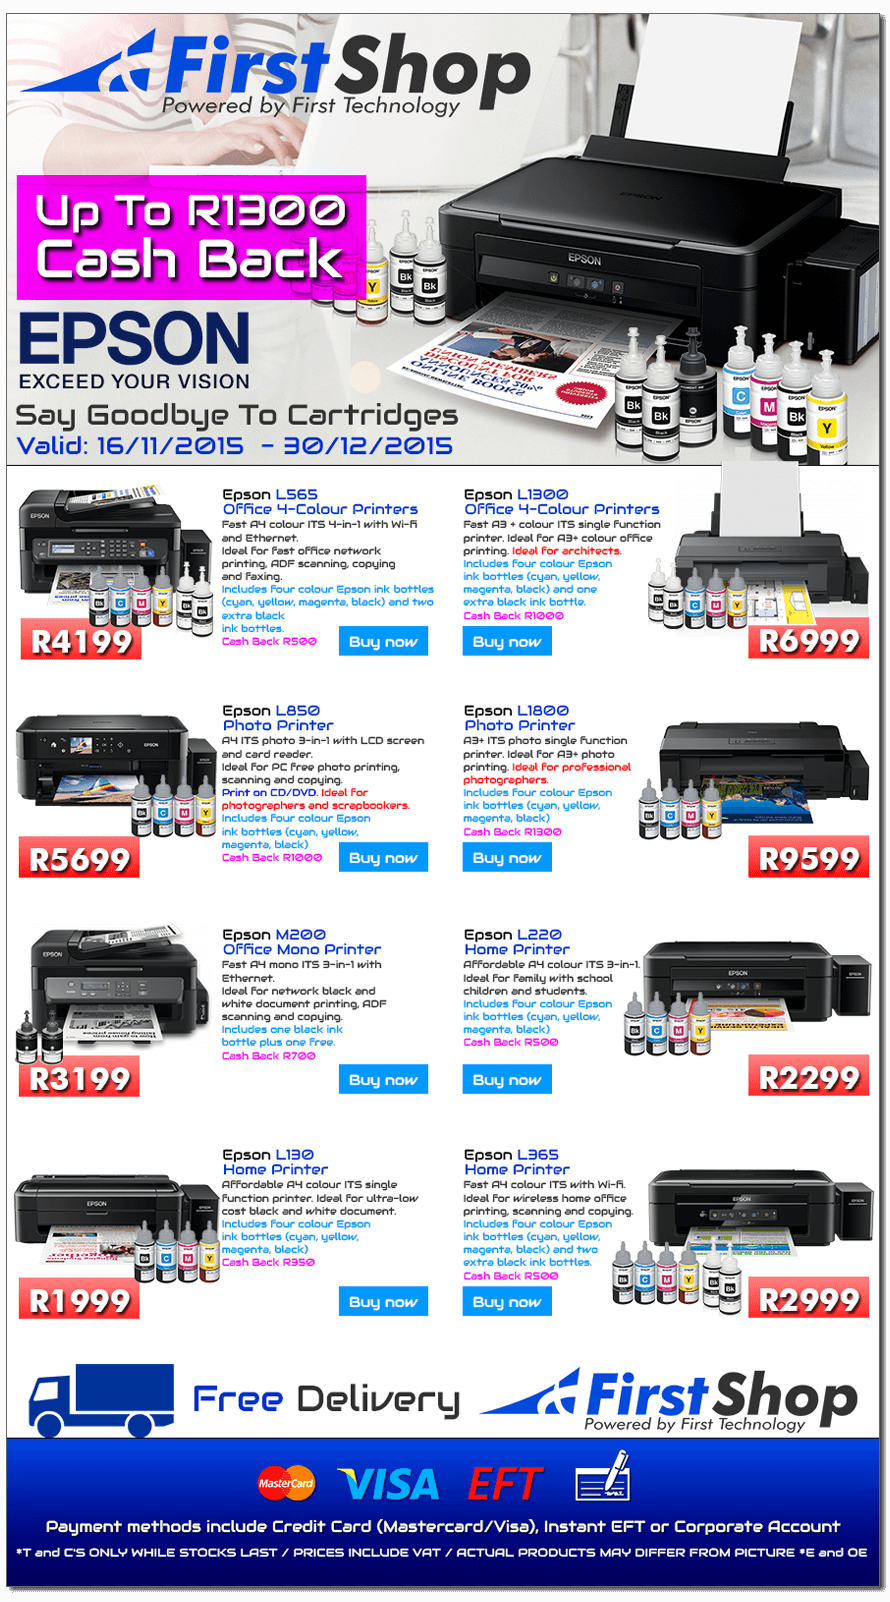 First Shop : Say Goodbye To Cartridges (16 Nov - 30 Dec 2015